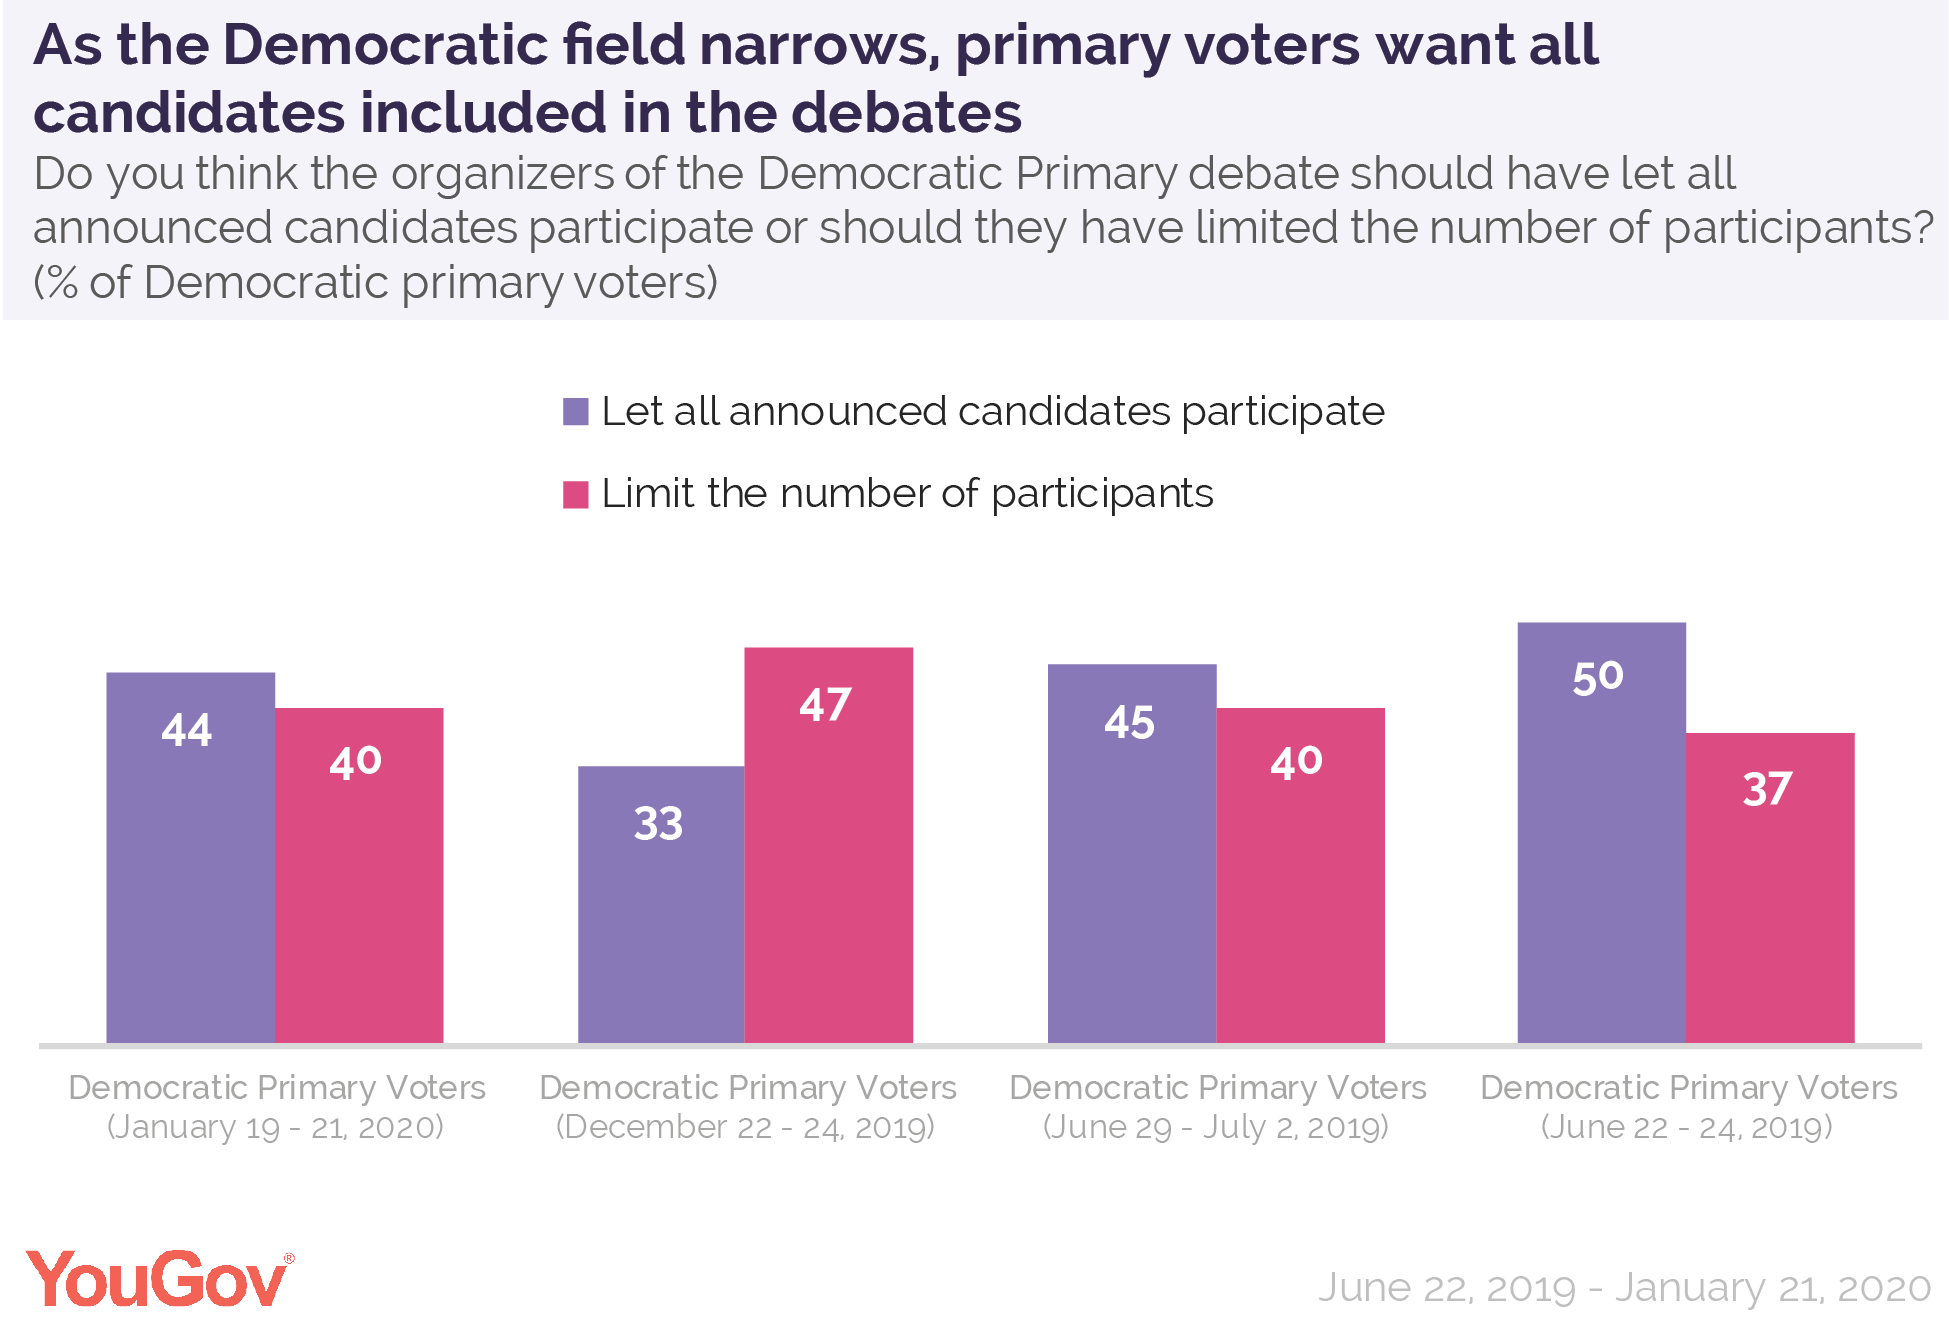 As the Democratic field narrows, primary voters want all candidates included in the debates